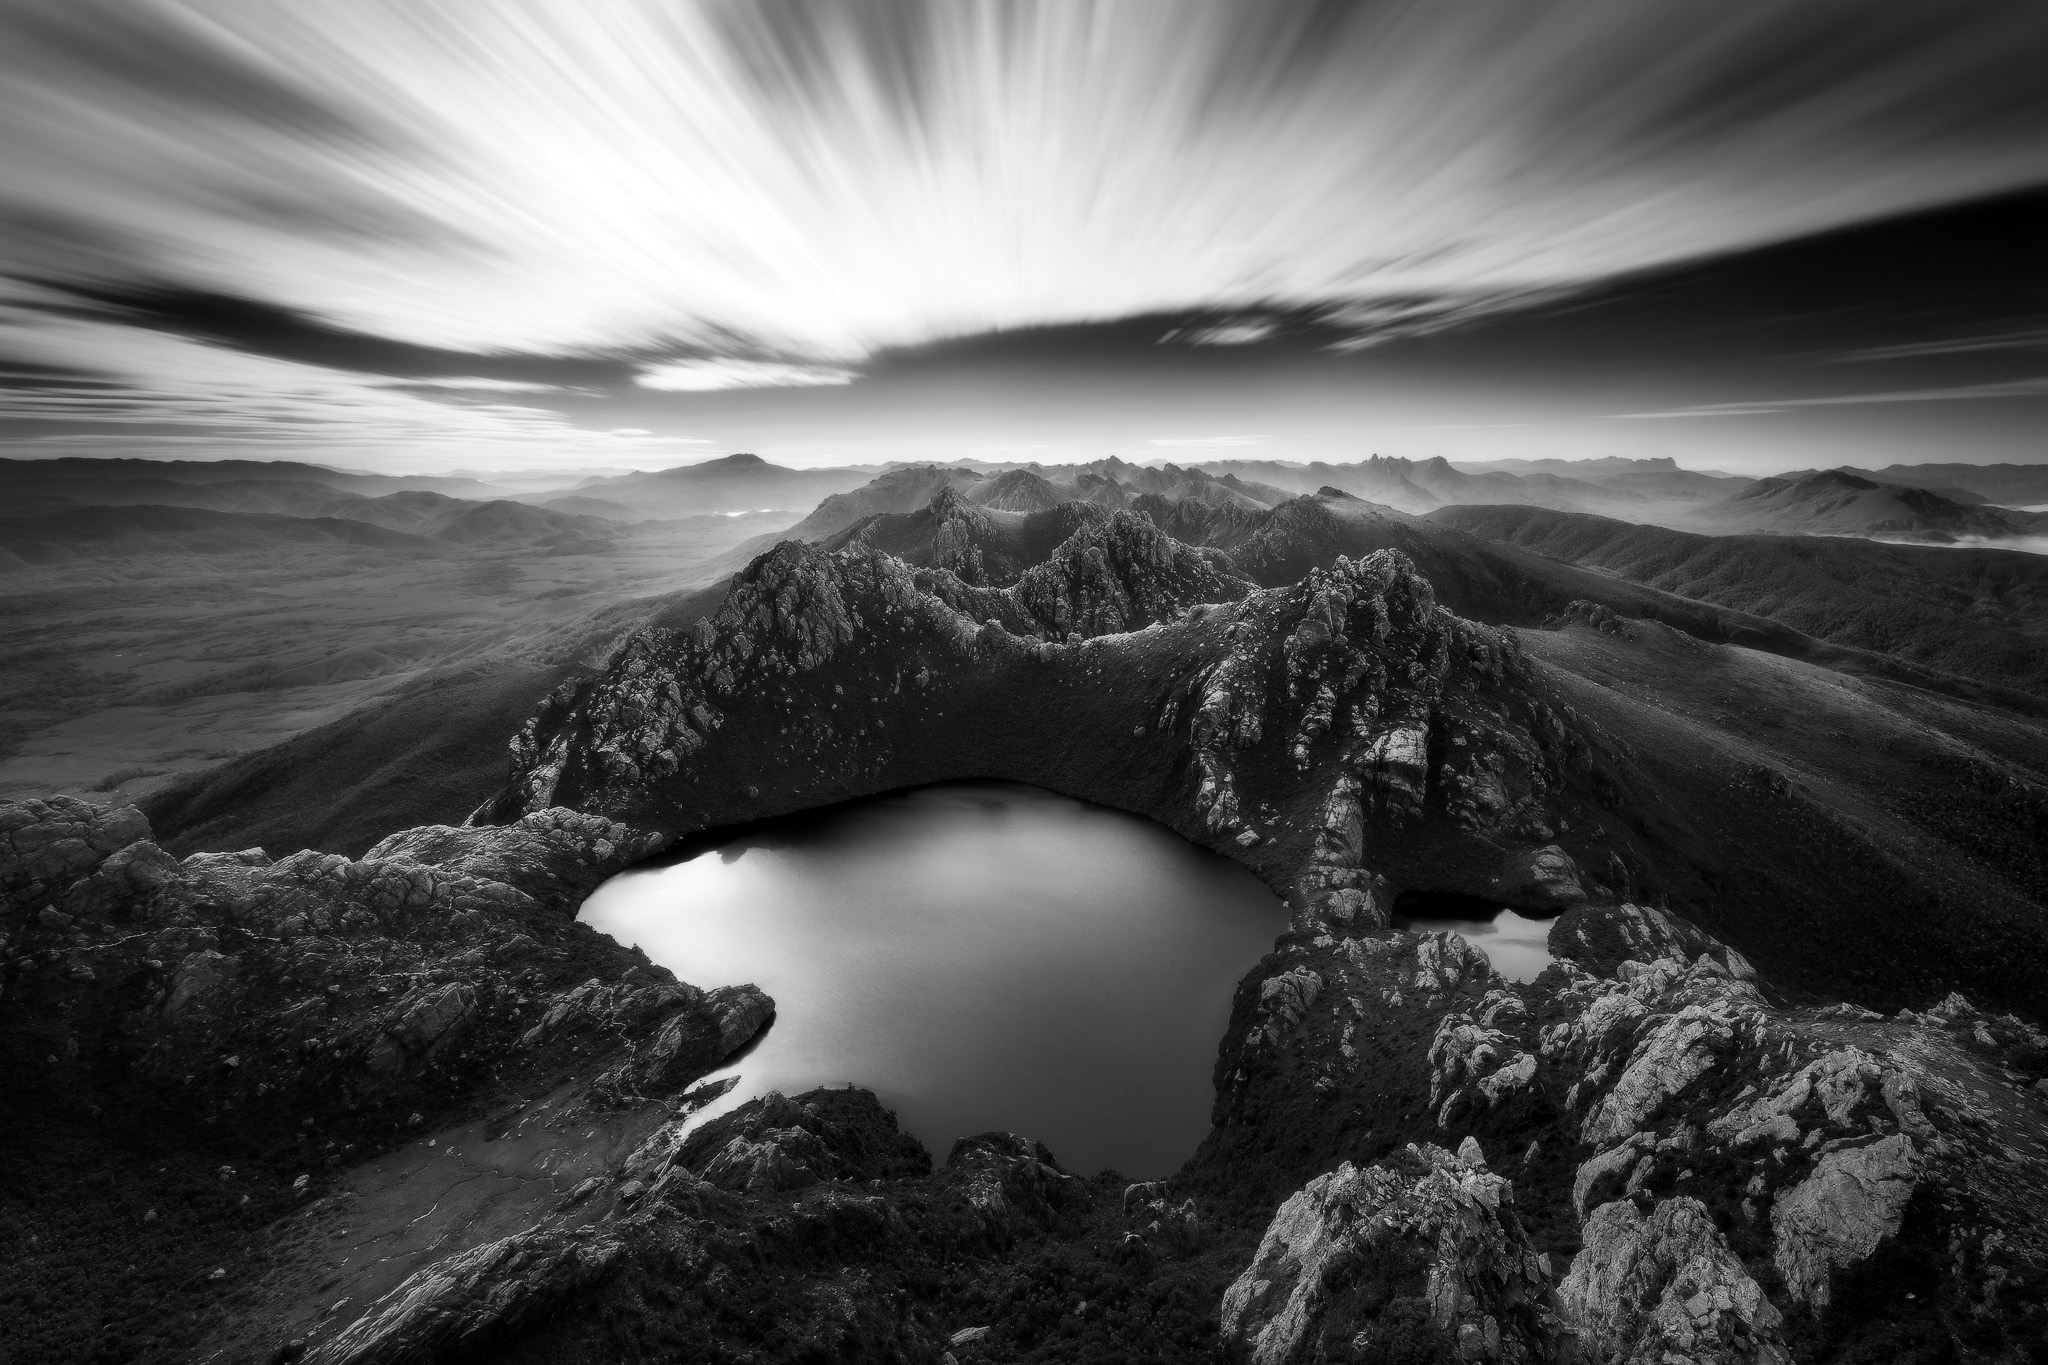 Hypnosis : Cloud rush past overhead as we looked down upon Lake Oberon from the summit of Mount Sirius. 15 stop ND filter used for the sky effect.